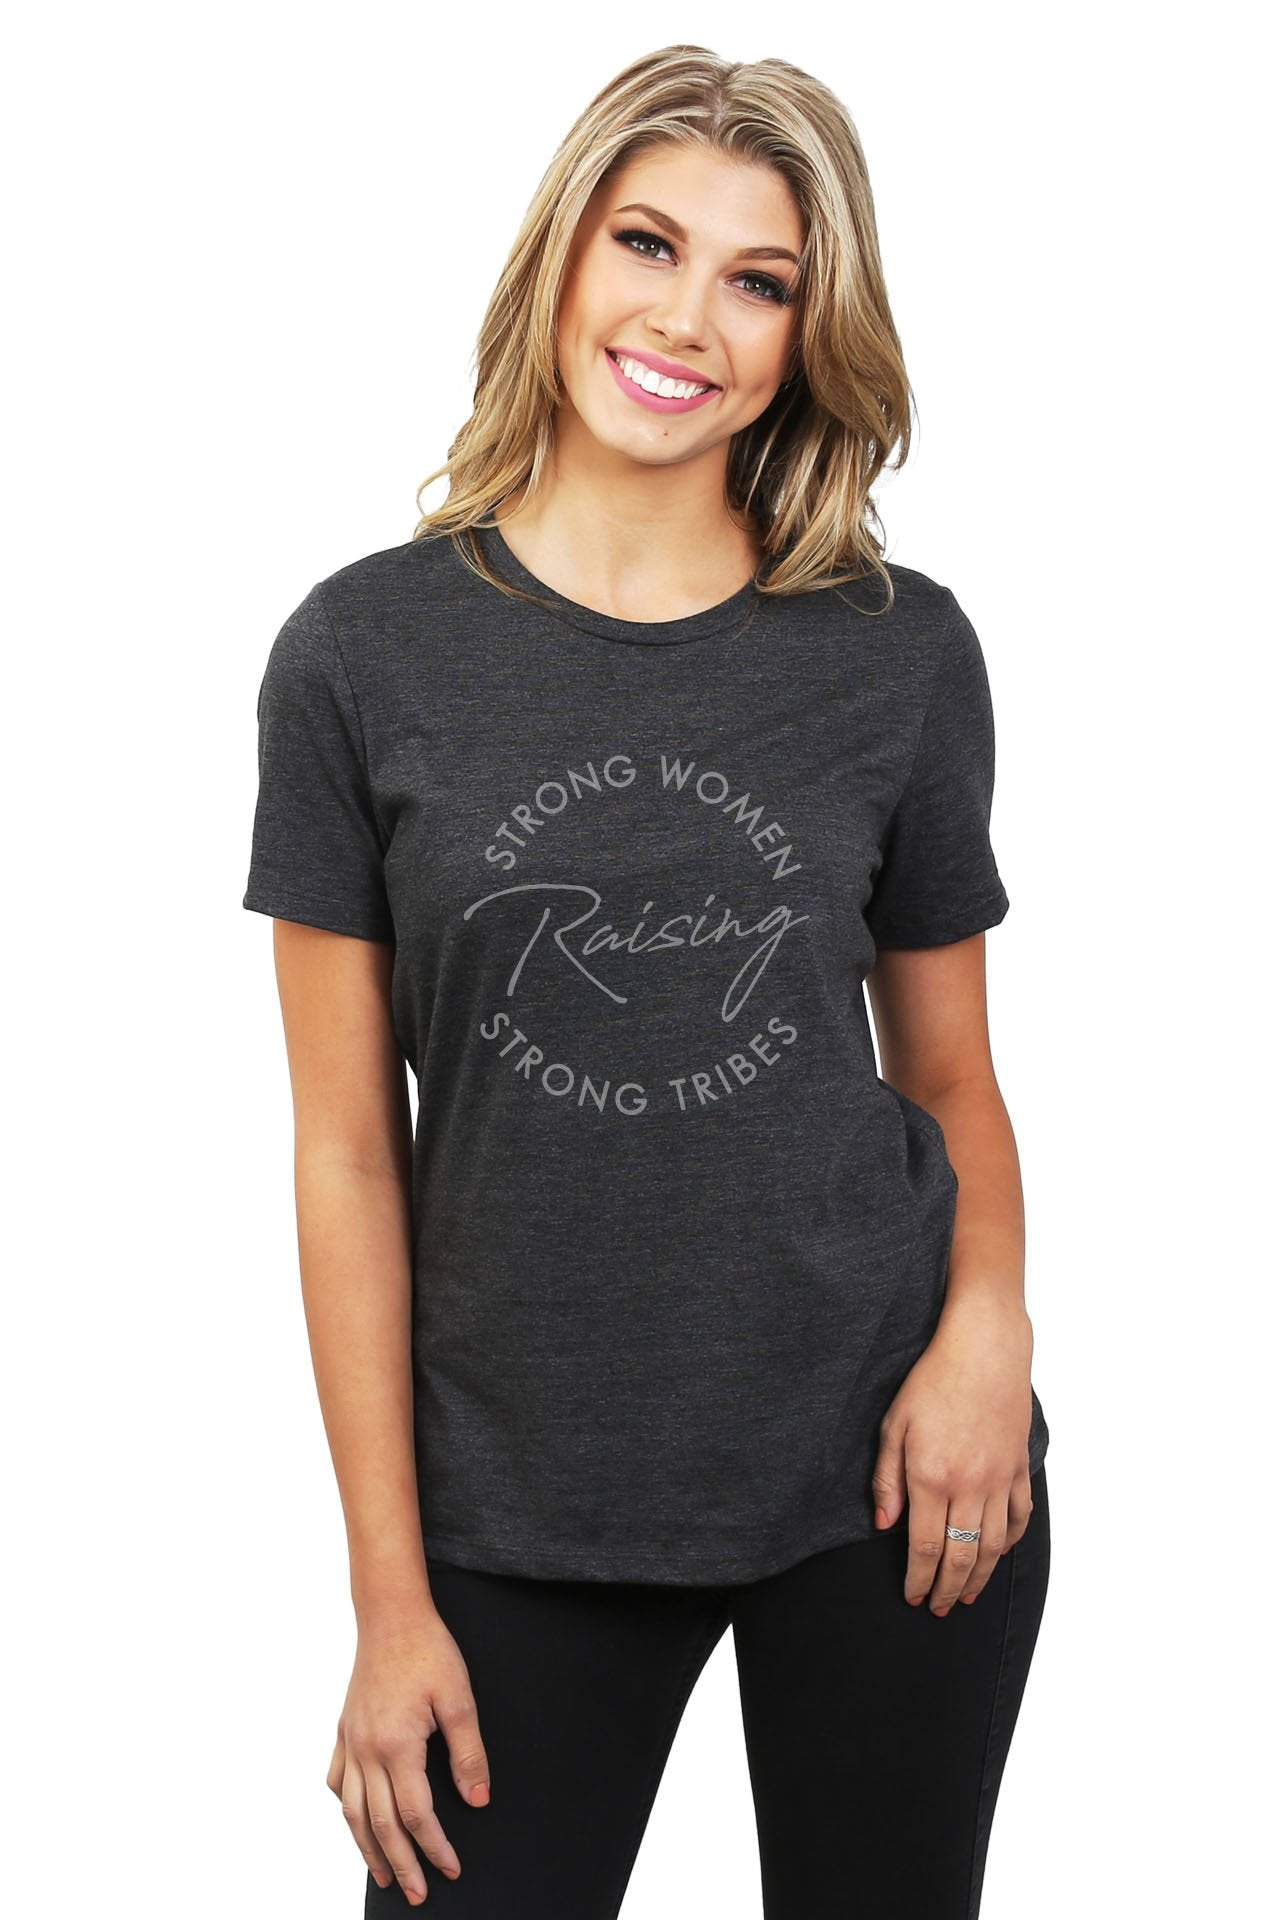 Strong Women Raising Strong Tribes Women's Relaxed Crewneck T-Shirt Top Tee Charcoal Grey